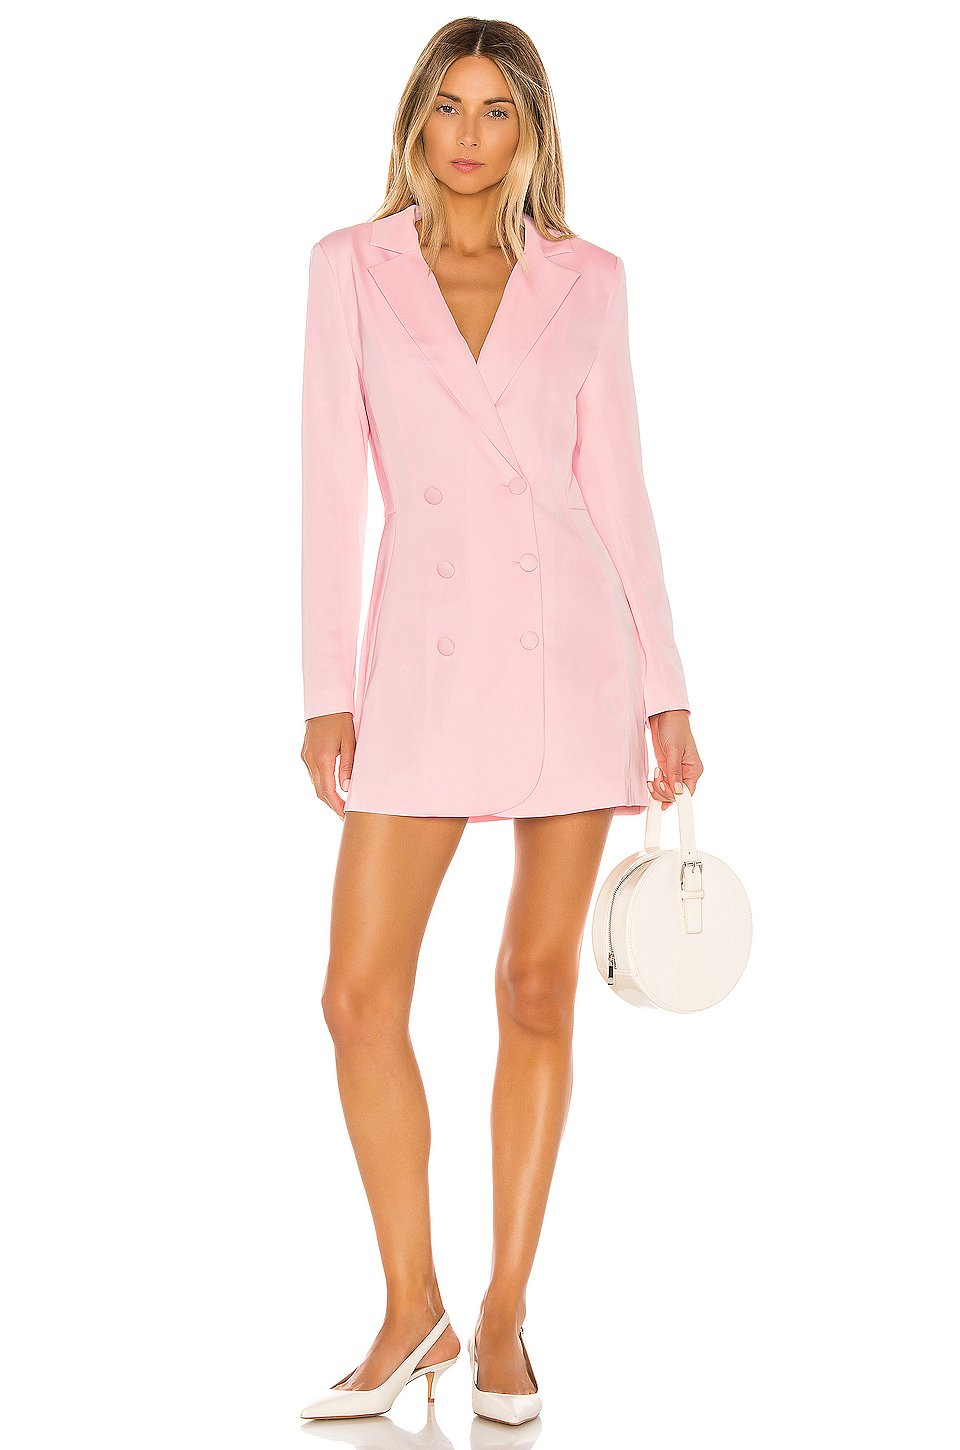 Naven Milo Mini Dress in Lotus Pink